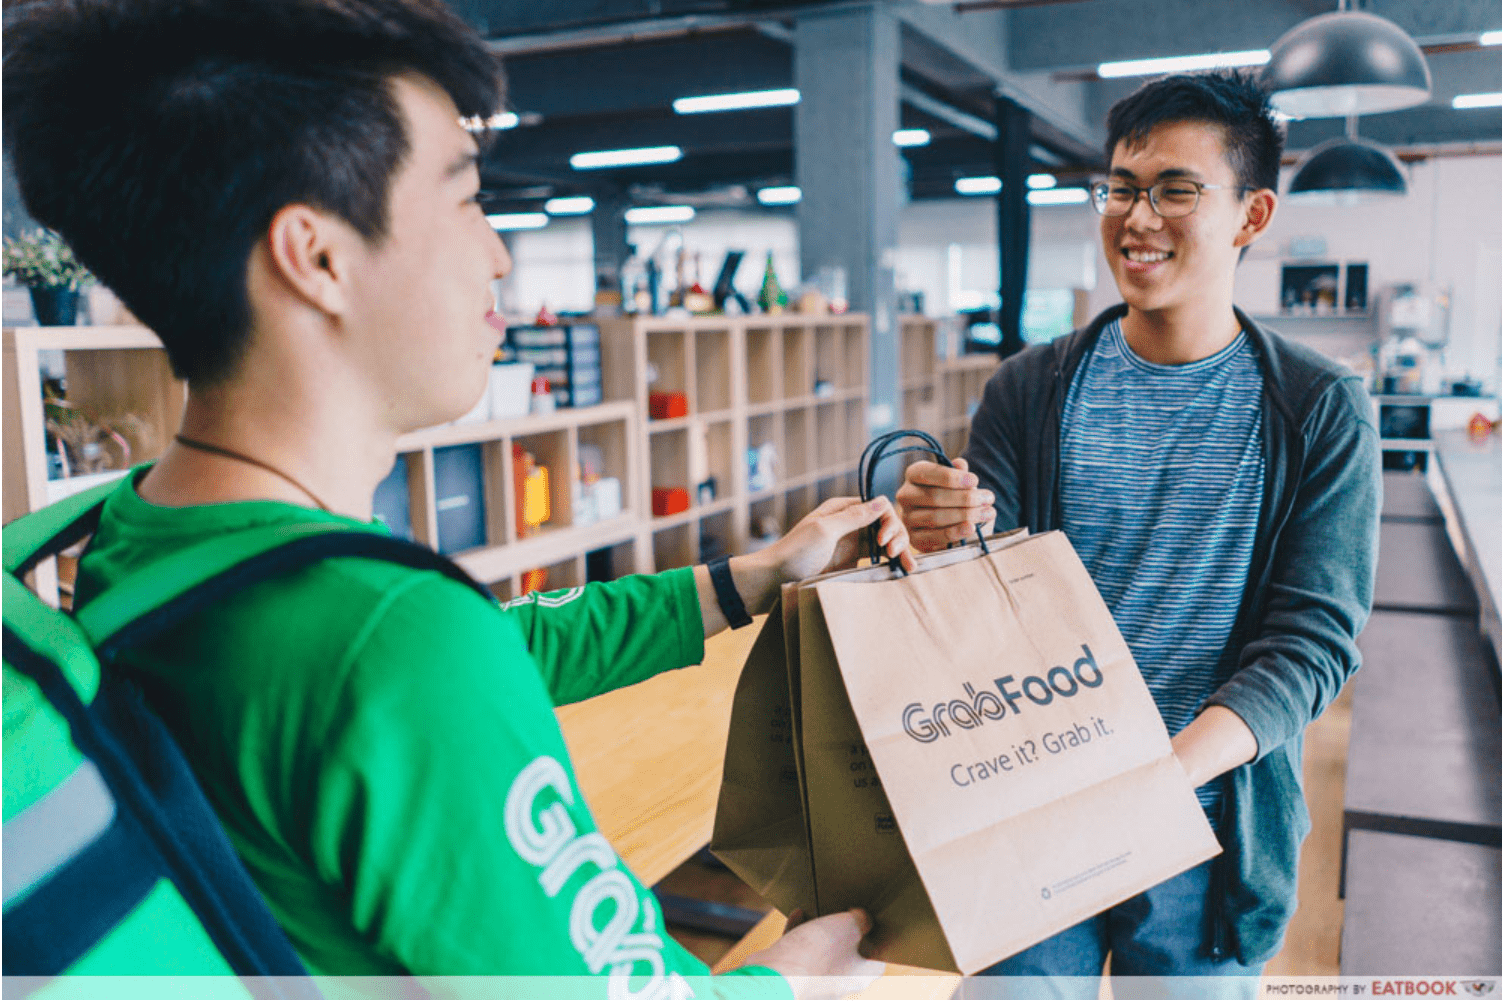 food delivery promo codes - Tea-time free delivery - grabfood